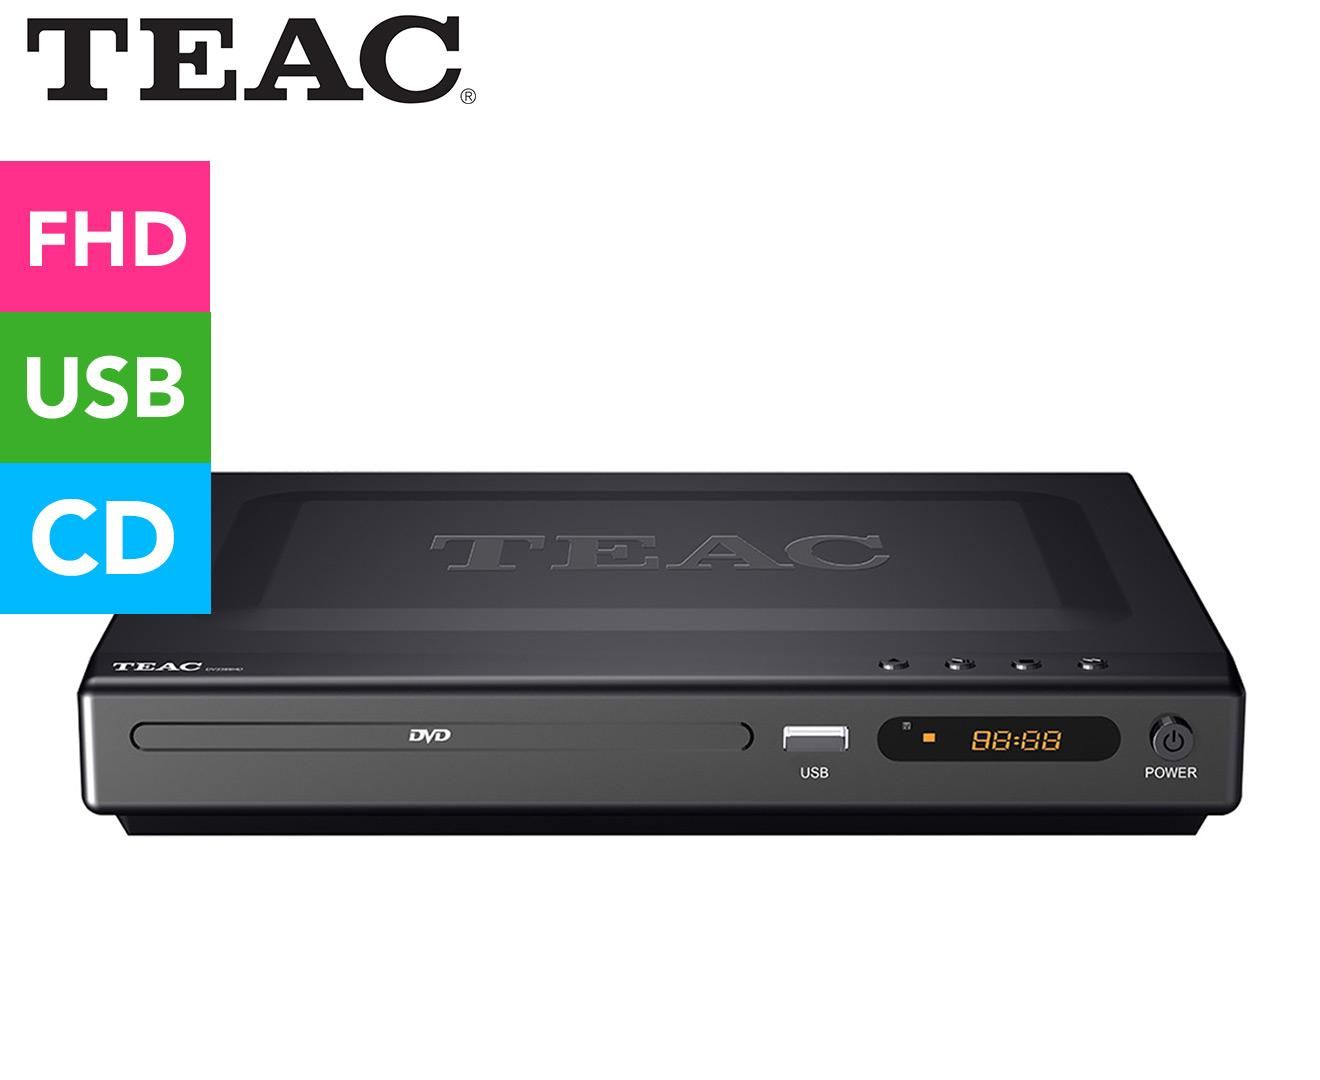 TEAC DVD Player w/ USB Media Playback Black